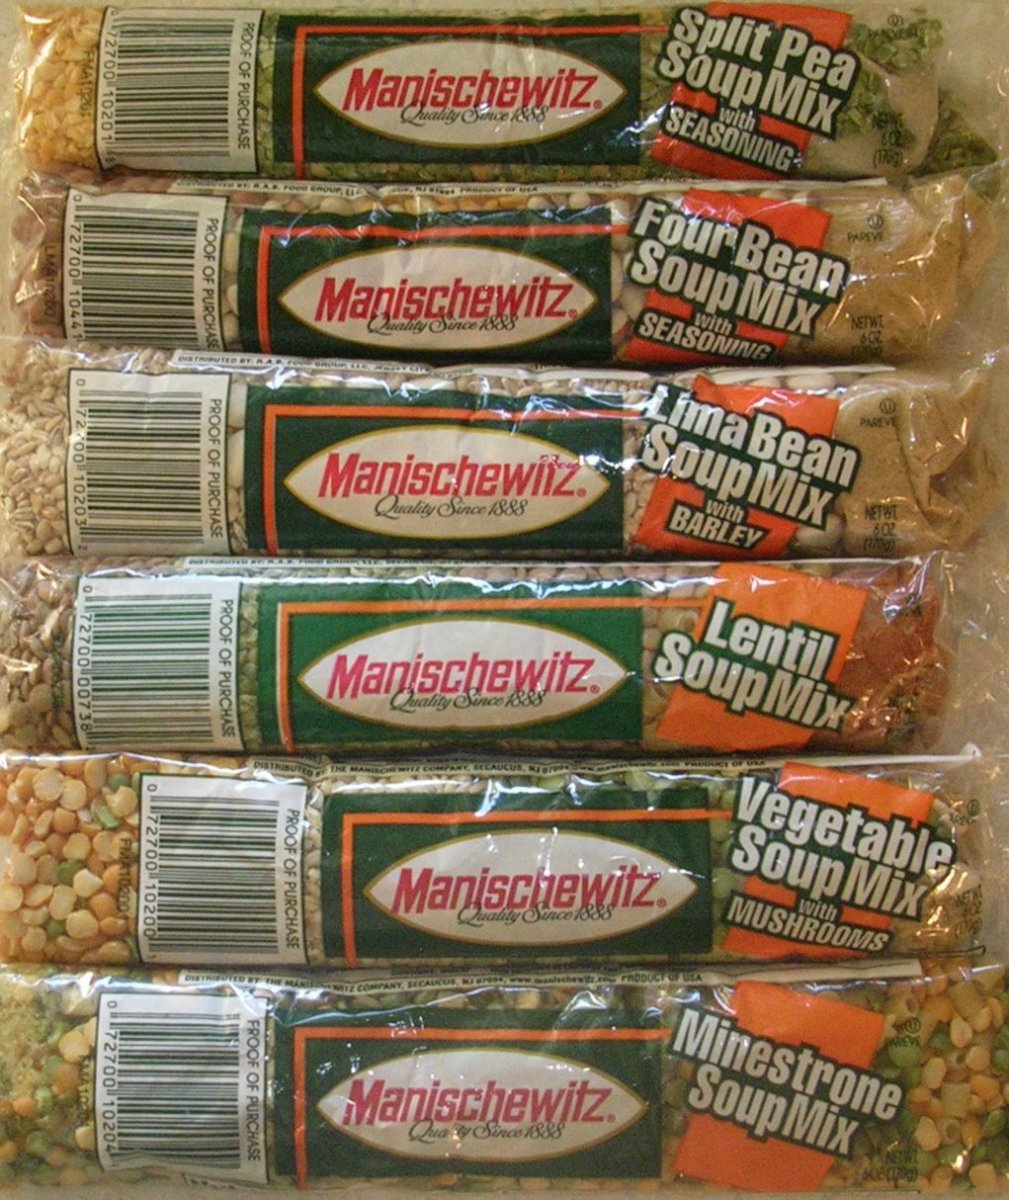 How to Use Manischewitz Mixes to Make Your Own Signature Soups